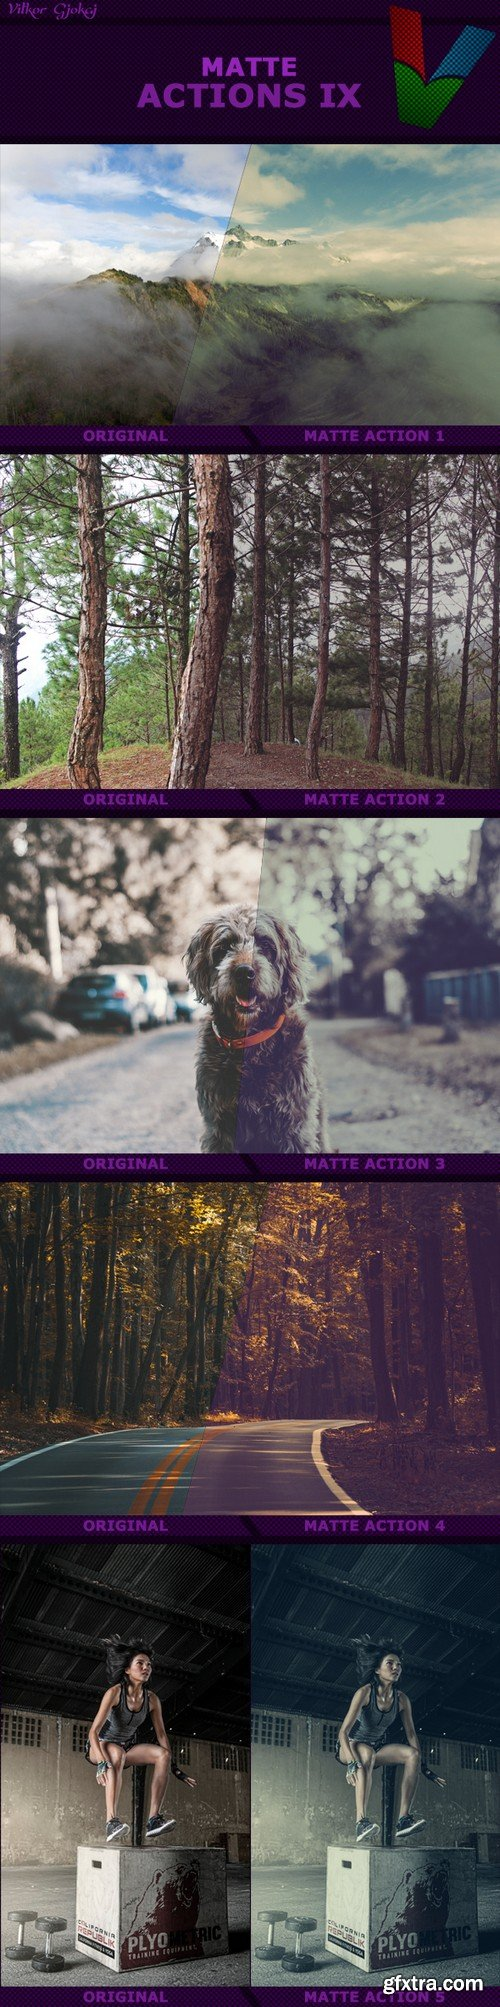 Graphicriver - Matte Actions IX 18149925